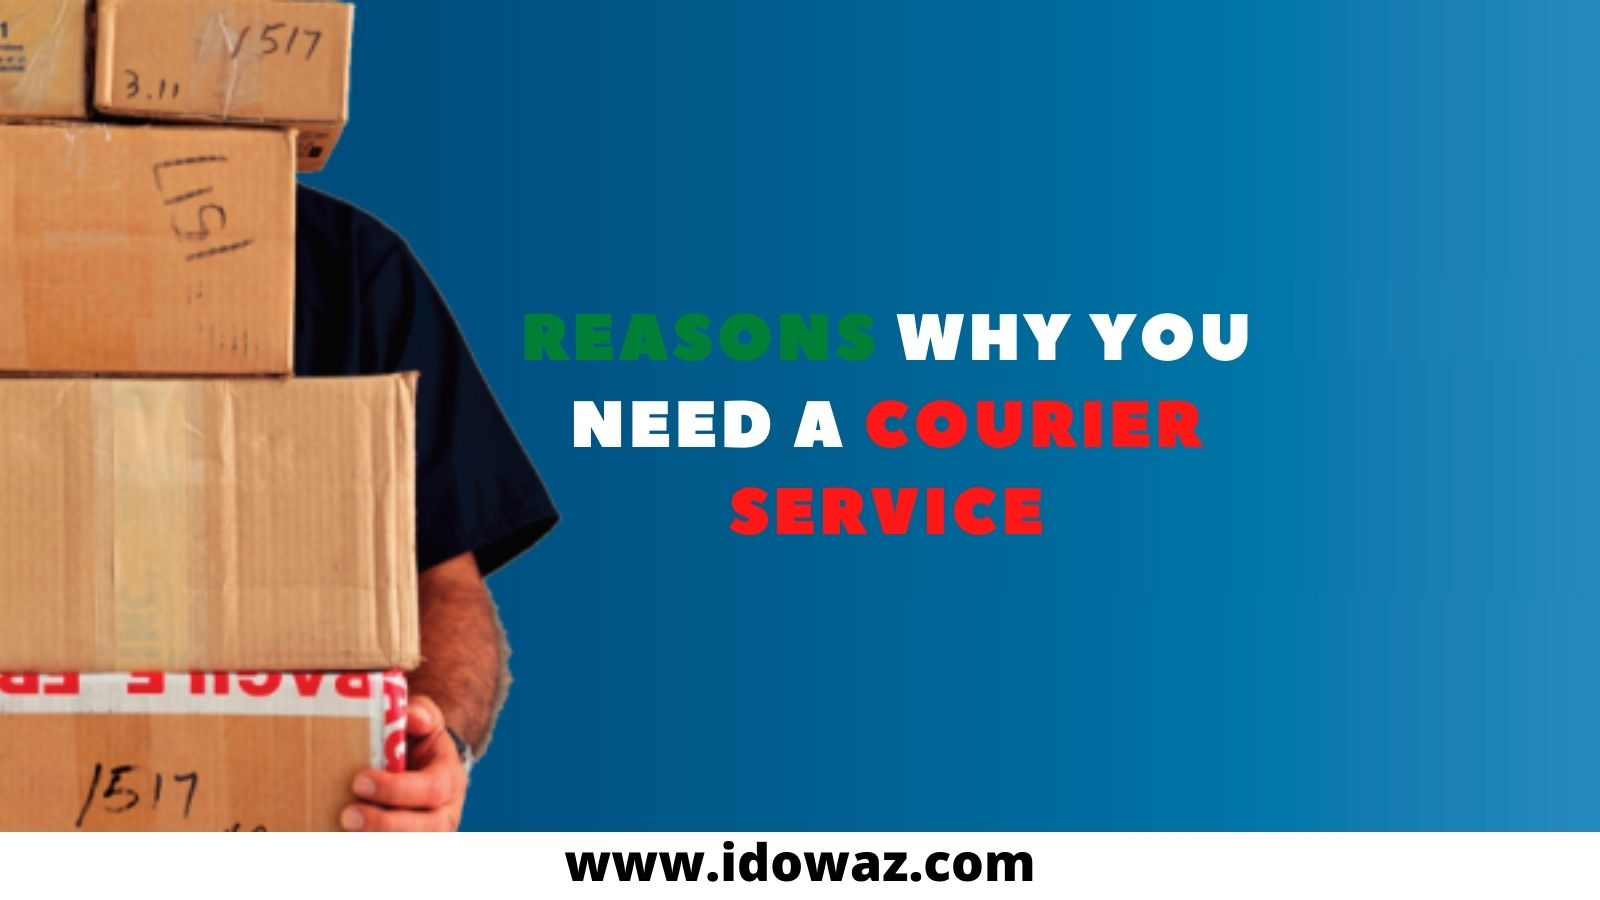 You are currently viewing REASONS WHY YOU NEED A COURIER SERVICE